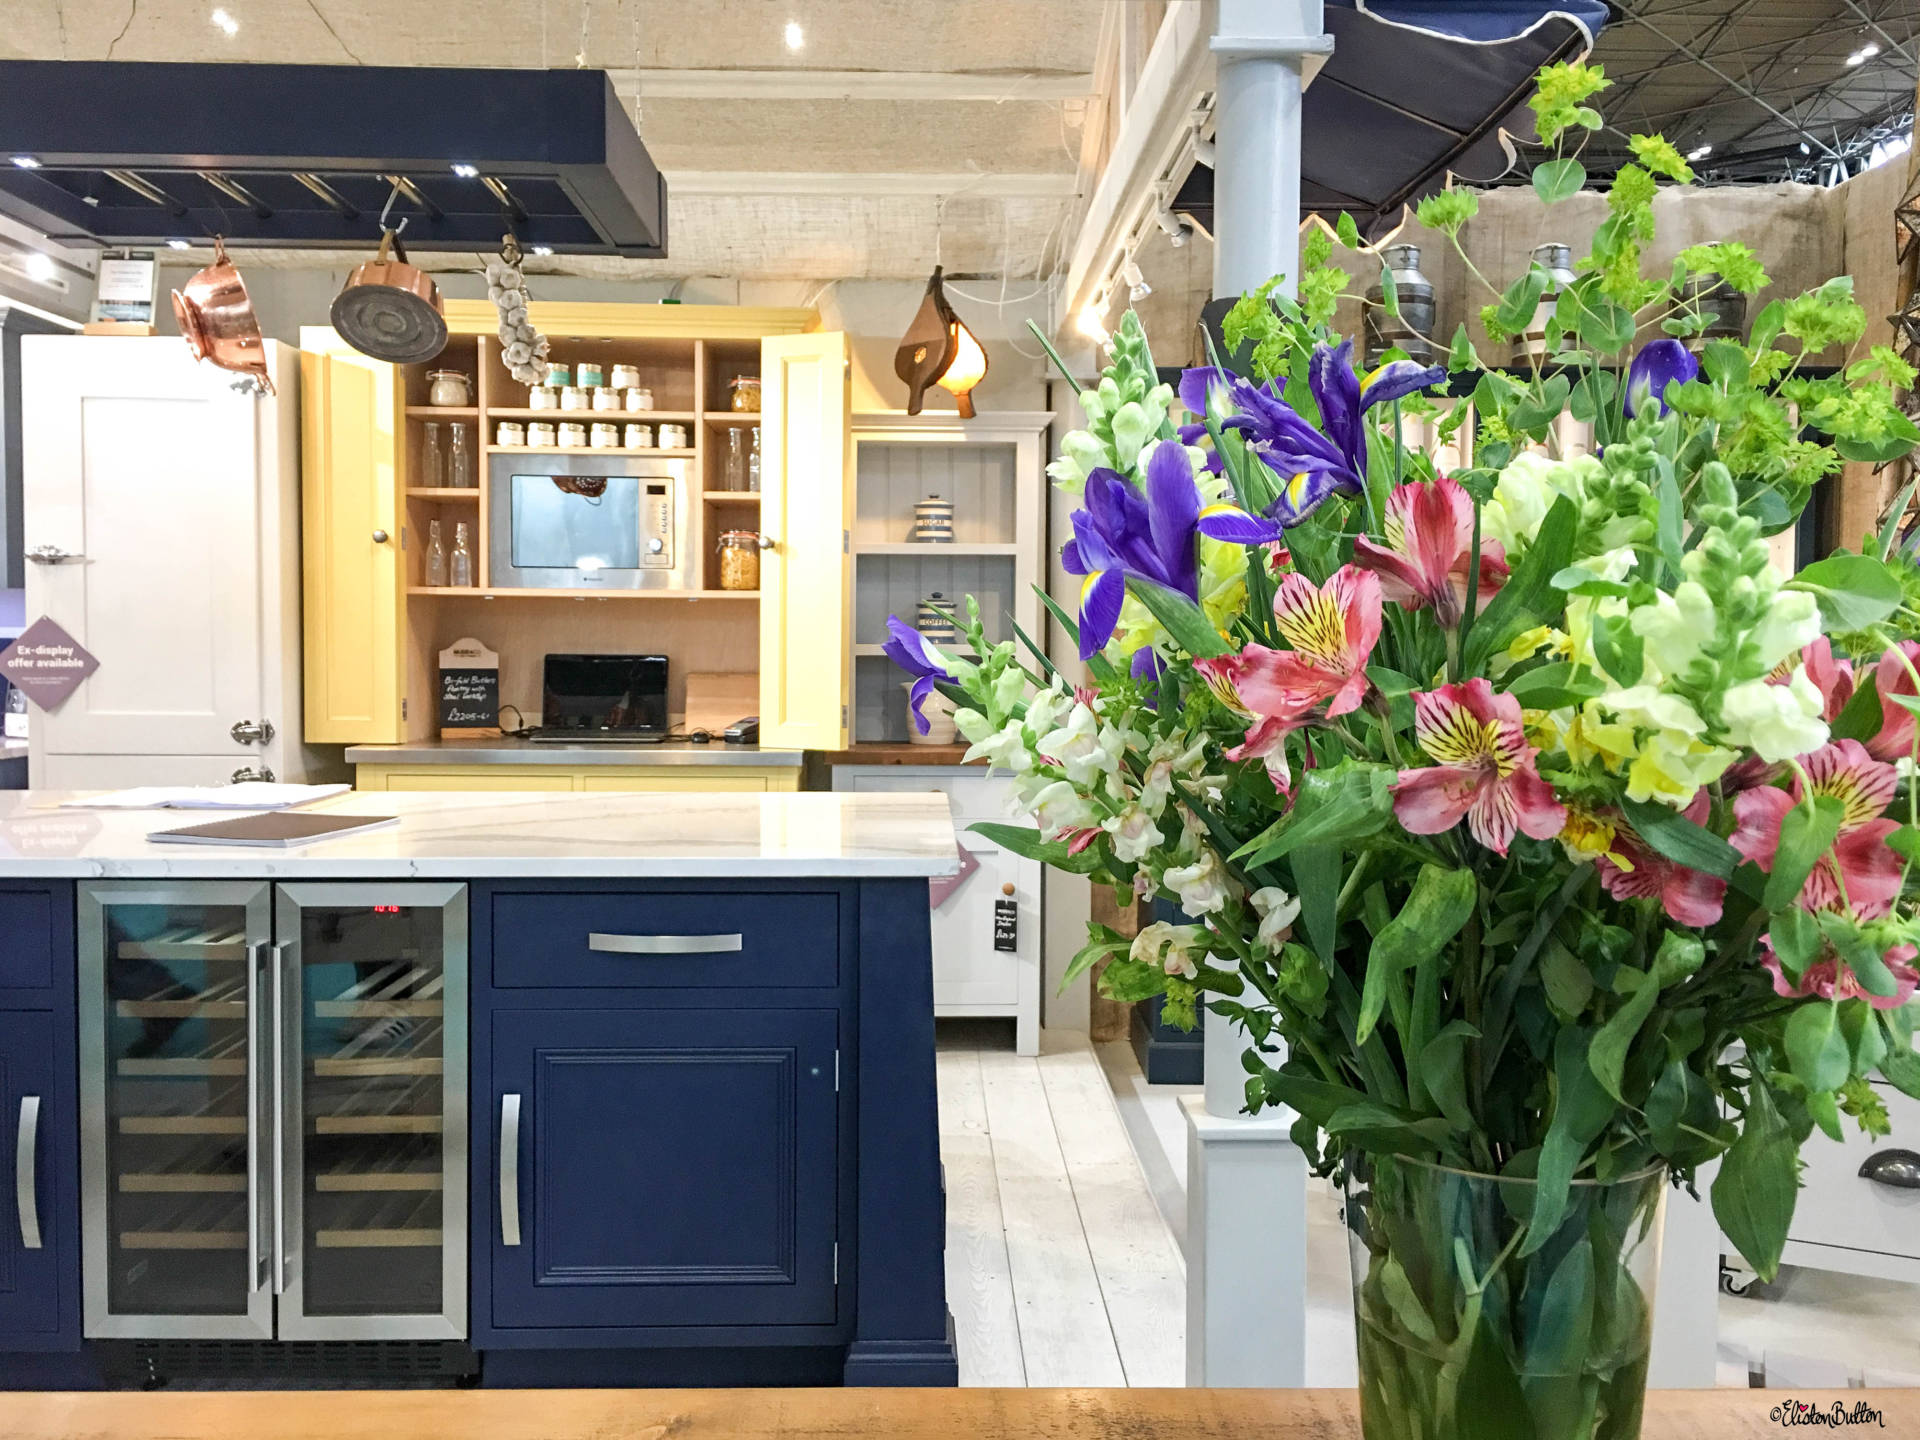 Navy and Cream Mudd & Co Handcrafted Kitchens at Grand Designs Live 2017 with Eliston Button - Grand Designs Live 2017 – Part One at www.elistonbutton.com - Eliston Button - That Crafty Kid – Art, Design, Craft & Adventure.